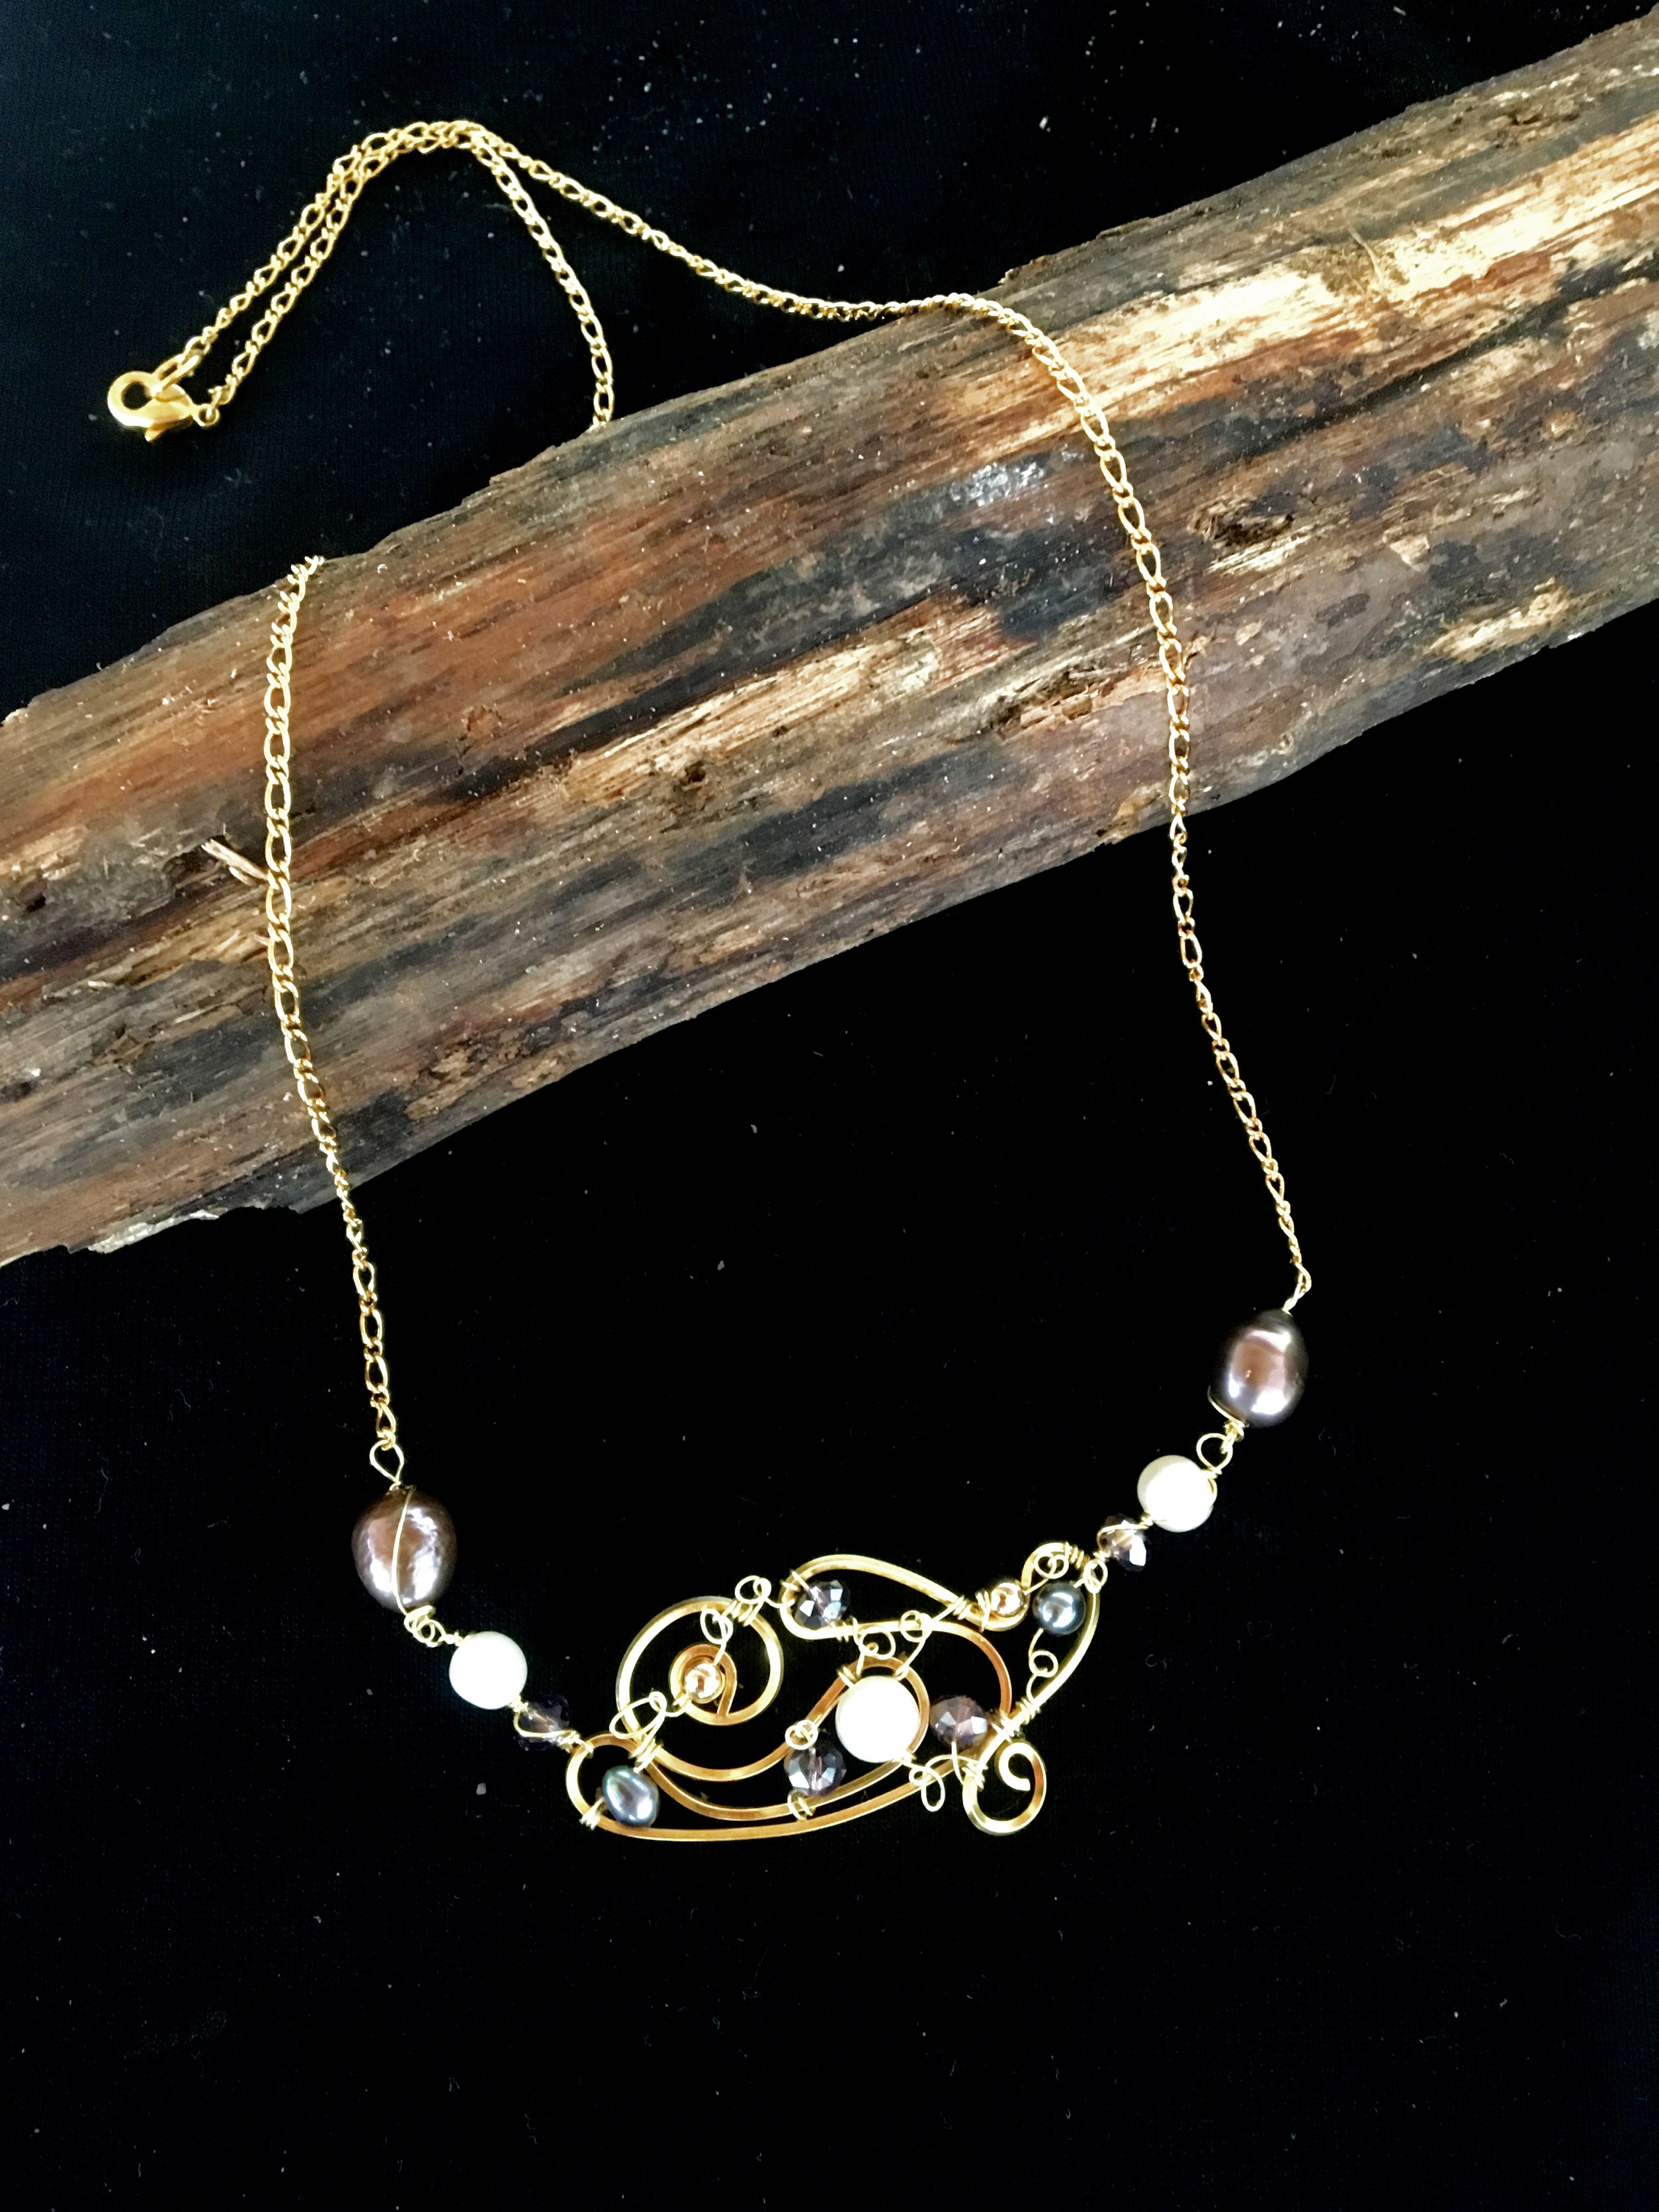 Dainty Deva Bracelet- Pearls and crystals - Silver Plated Gold Color